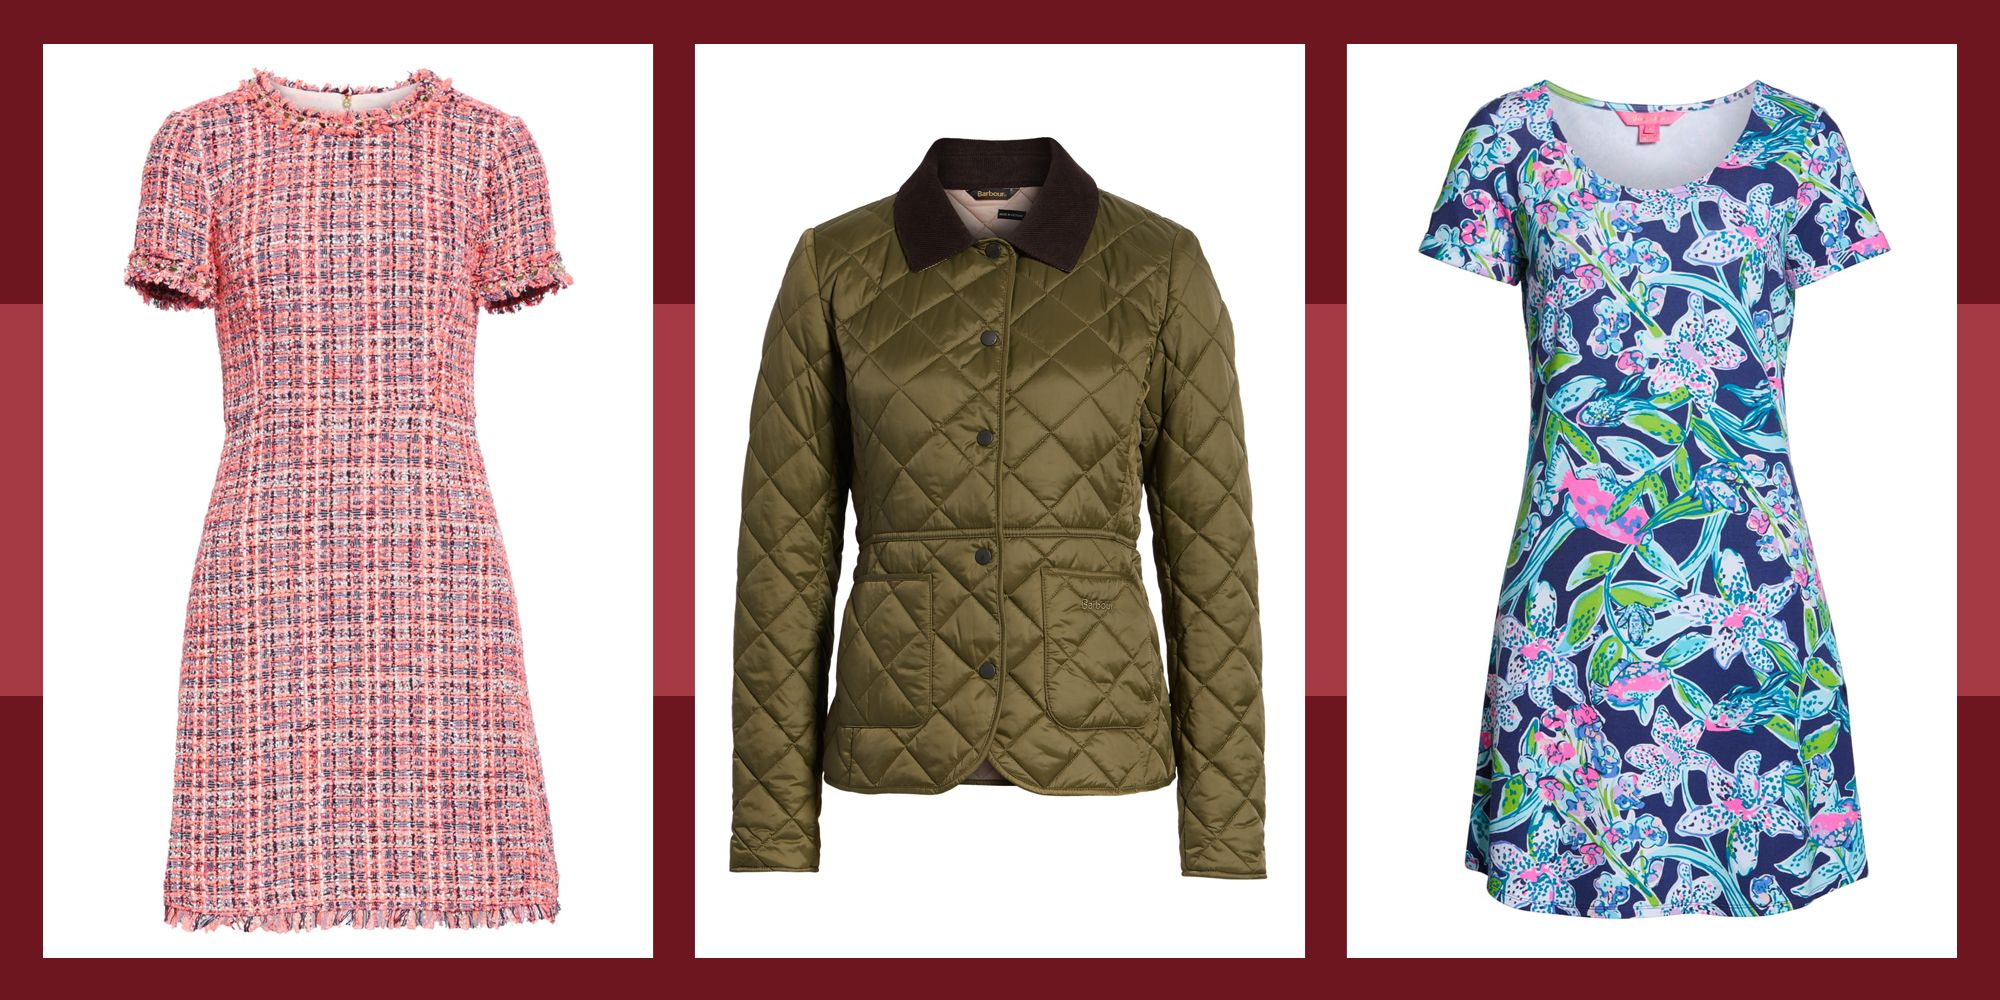 Stock Up on Your Favorite Barbour Jackets and DVF Wrap Dresses at Nordstrom Now